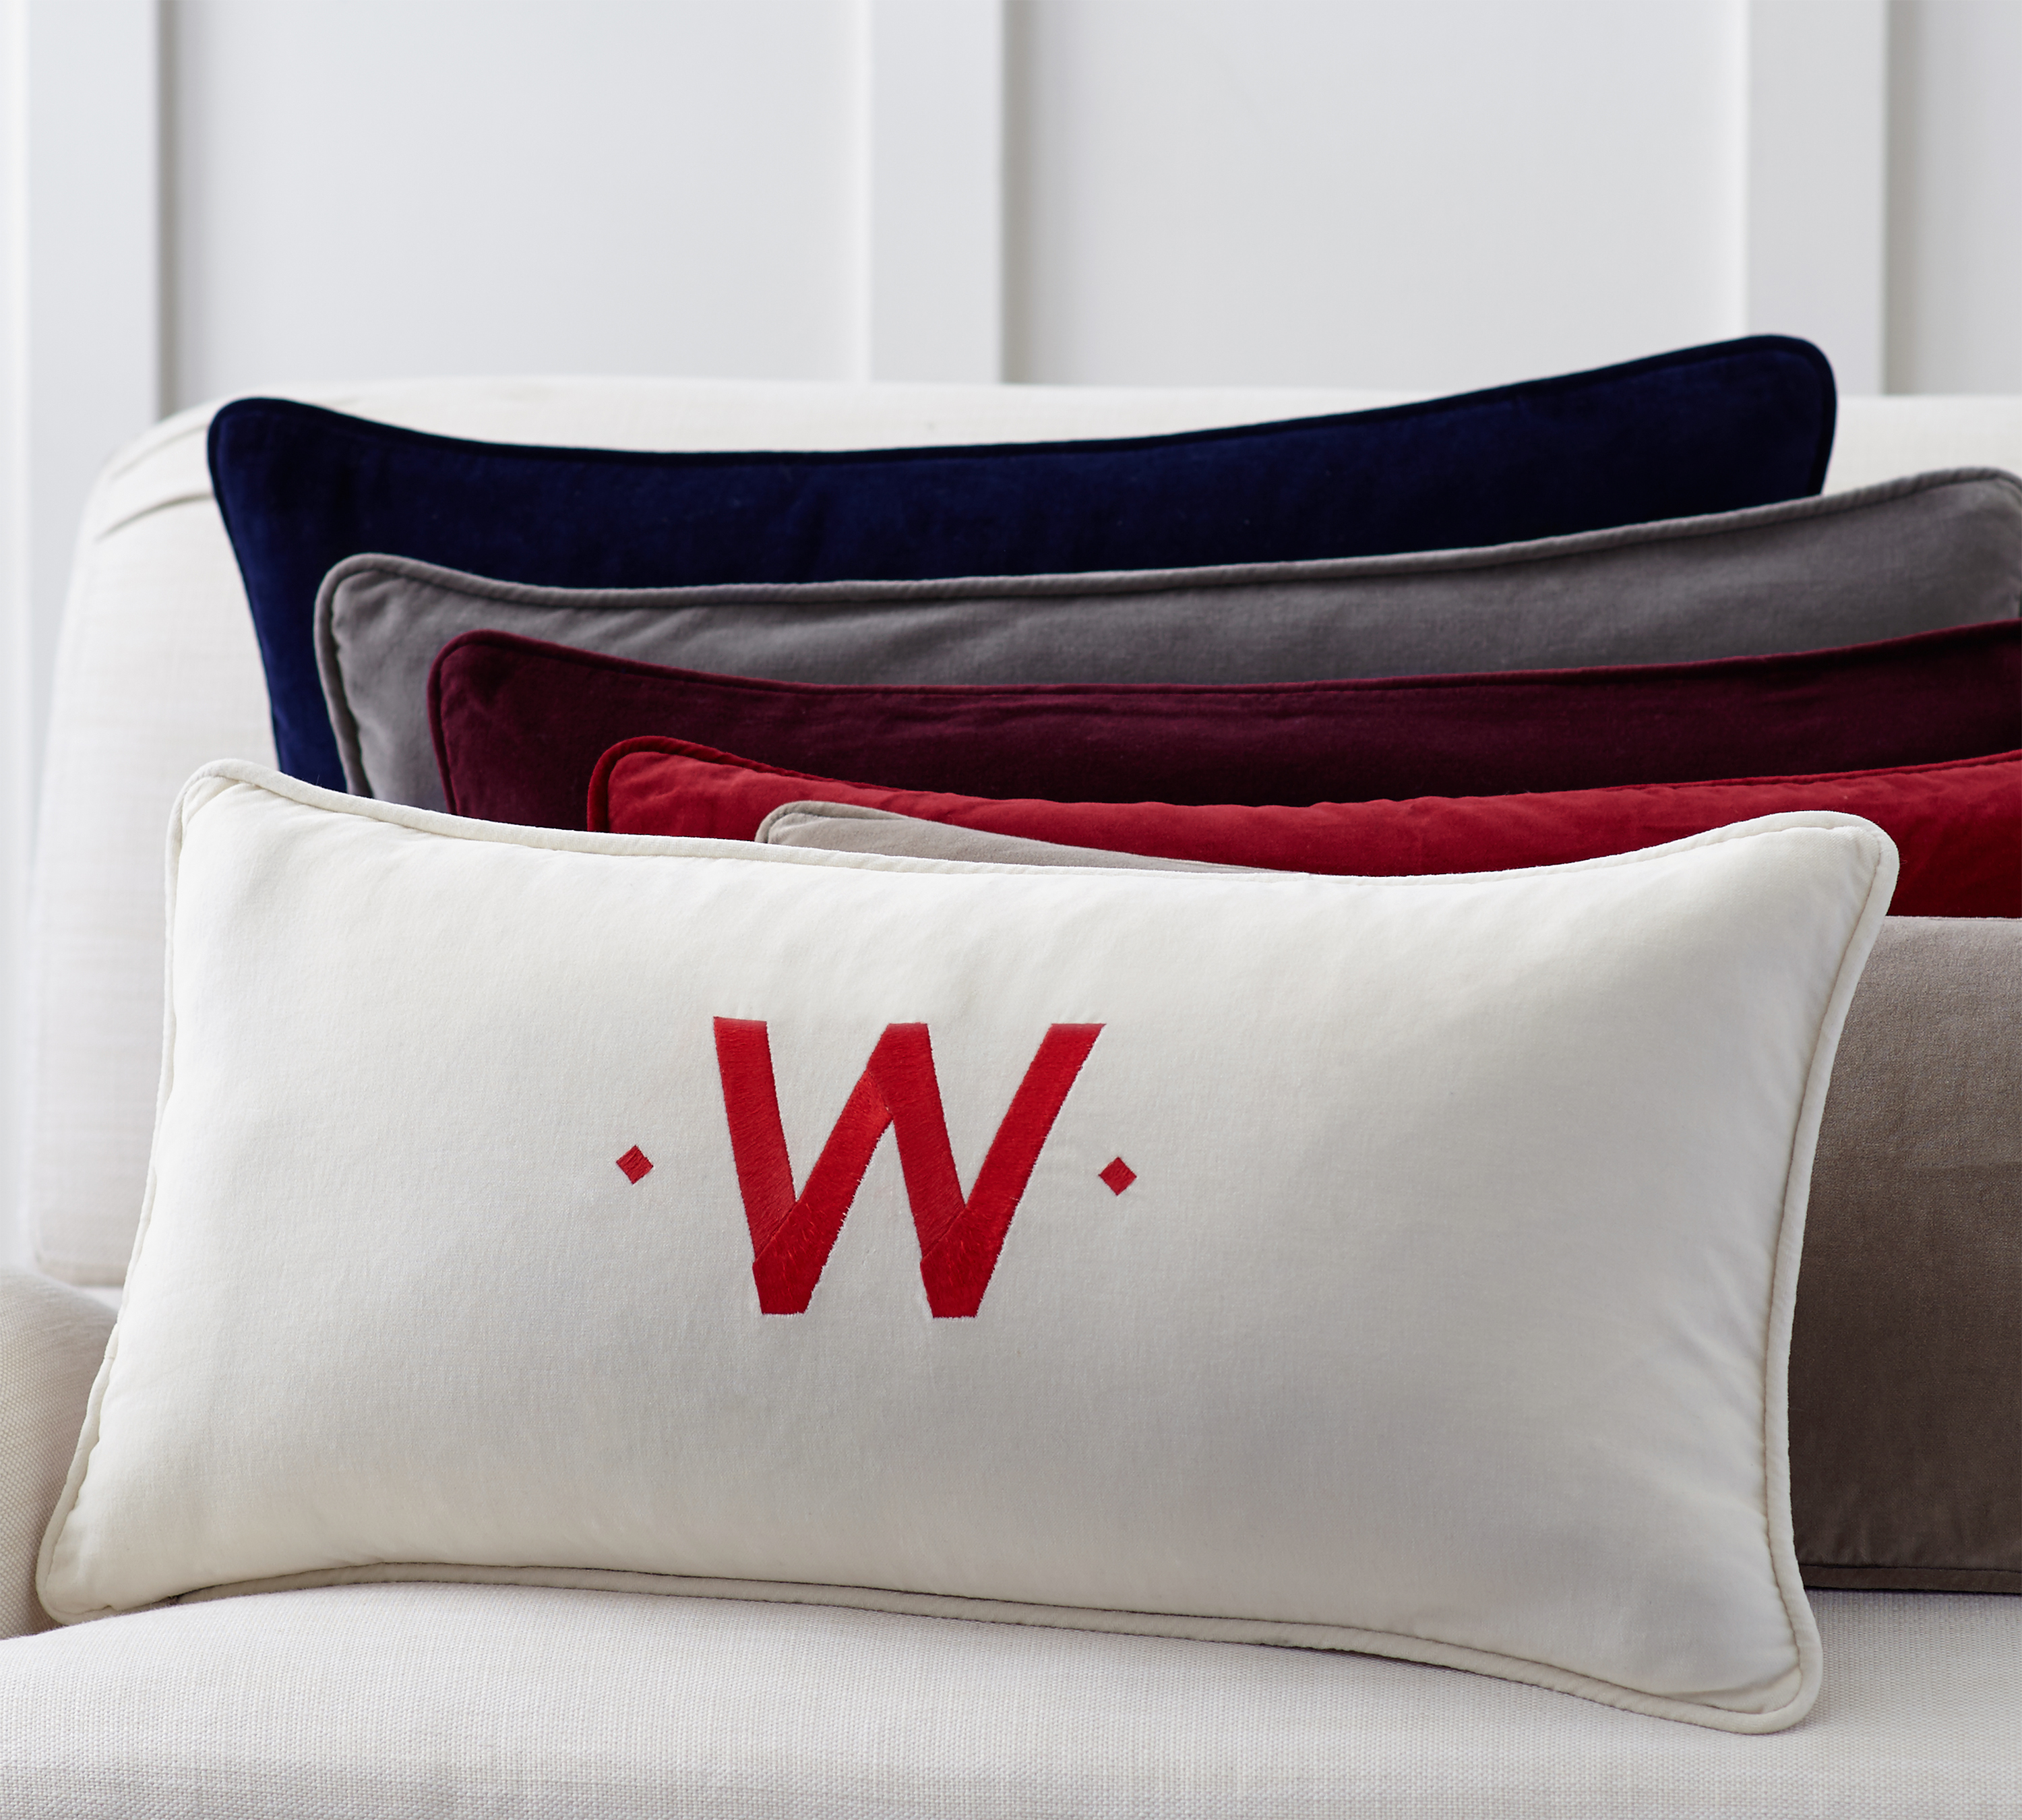 Pottery Barn's Solid Velvet Lumbar Pillow Cover comes in a selection of colors and can be monogrammed ($29.50 for the pillow cover at potterybarn.com.) Insert sold separately.  Photo from Pottery Barn.